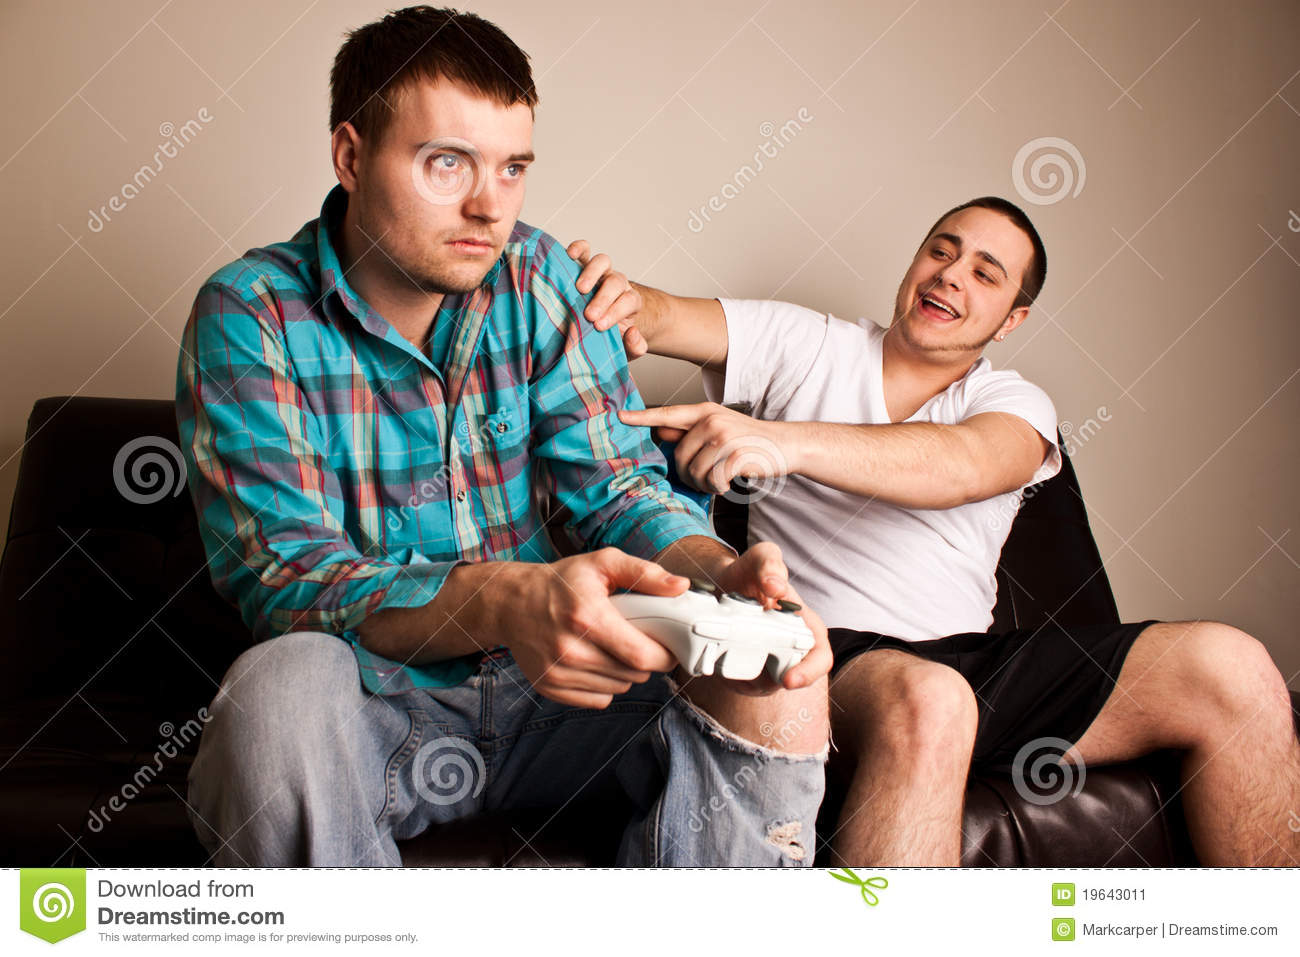 Guys Video Games Lose Stock Image Image 19643011